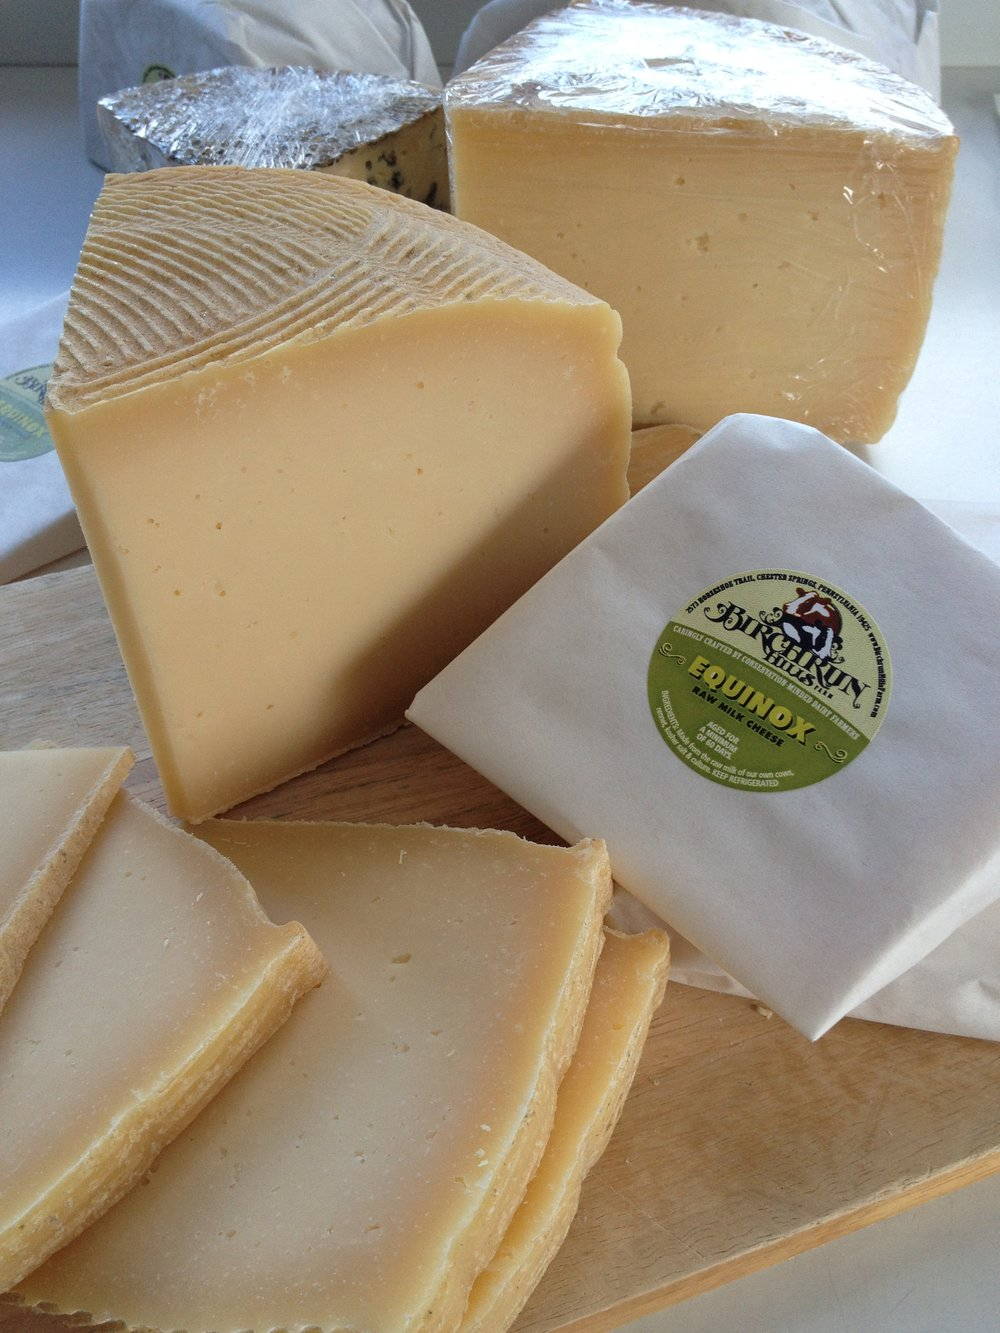 Equinox ~ raw cow's milk ~ Take a trip to the Alps with this Swiss-inspired mountain cheese. Firm, mild, and nutty with a hint of salt and a toasty brown butter finish. Serve with seasonal fruit and a glass of Riesling, or melt over roasted fingerling potatoes.